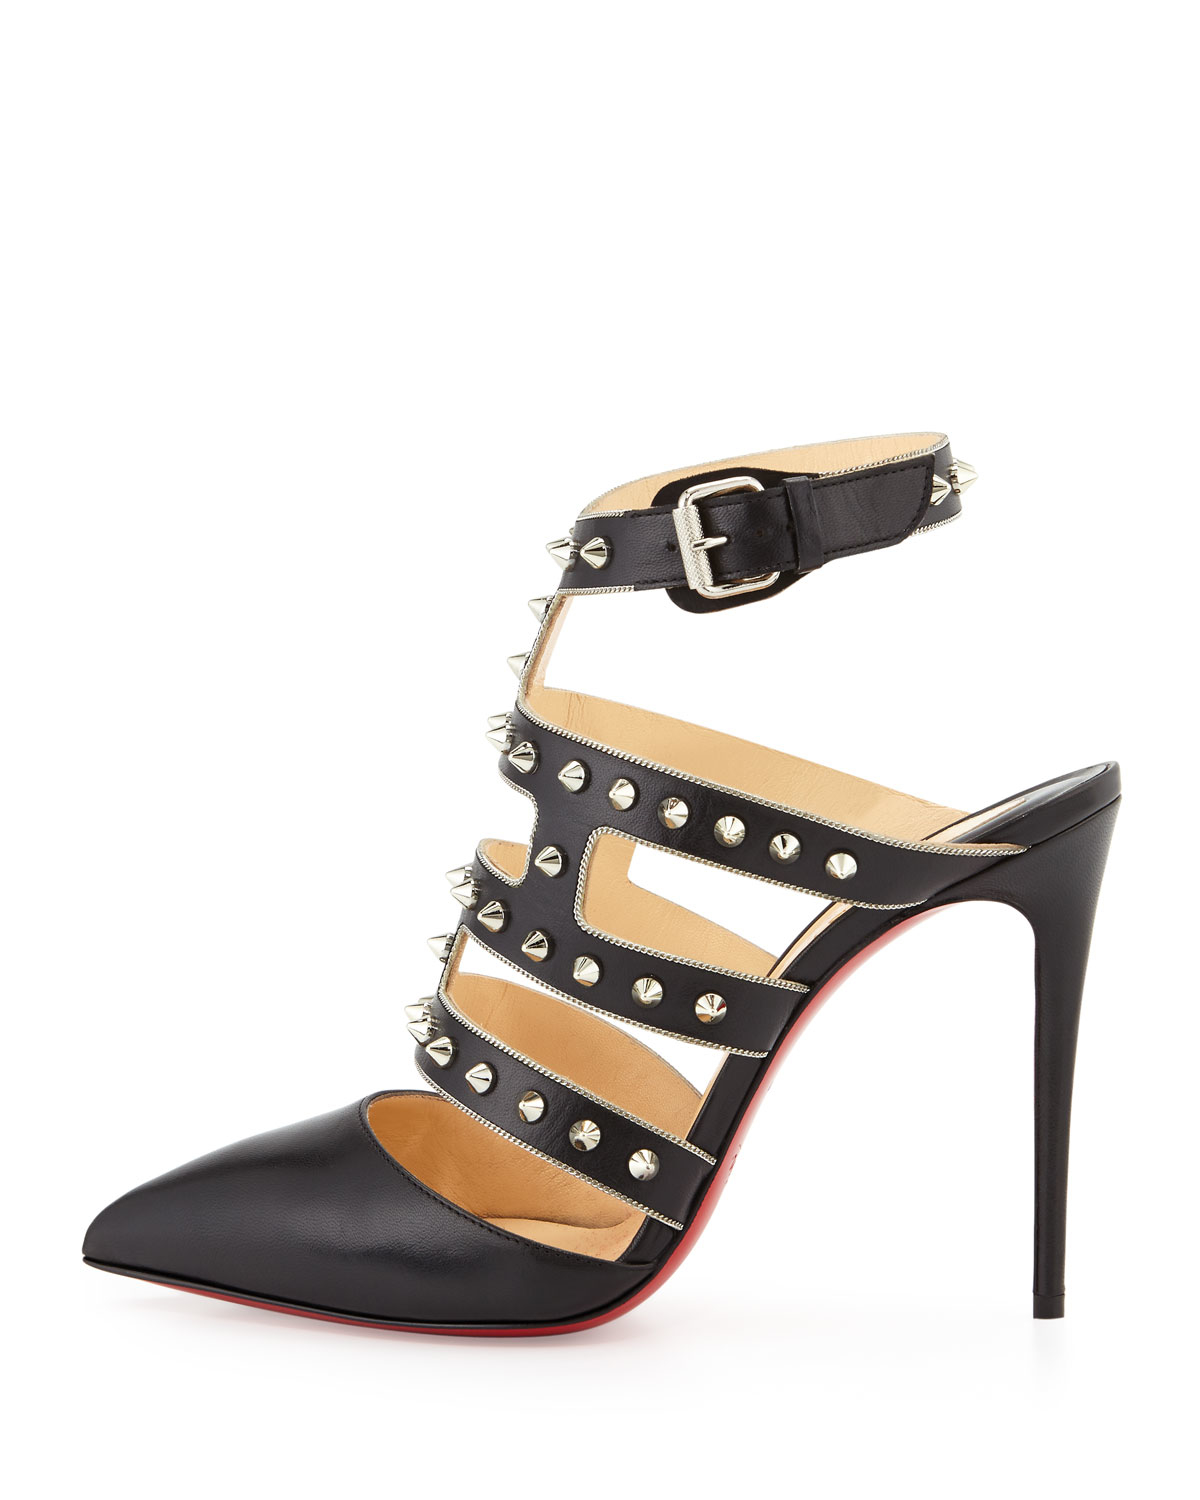 black spiked christian louboutin sneakers - Christian louboutin Tchikaboum Studded Red Sole Pump in Silver ...